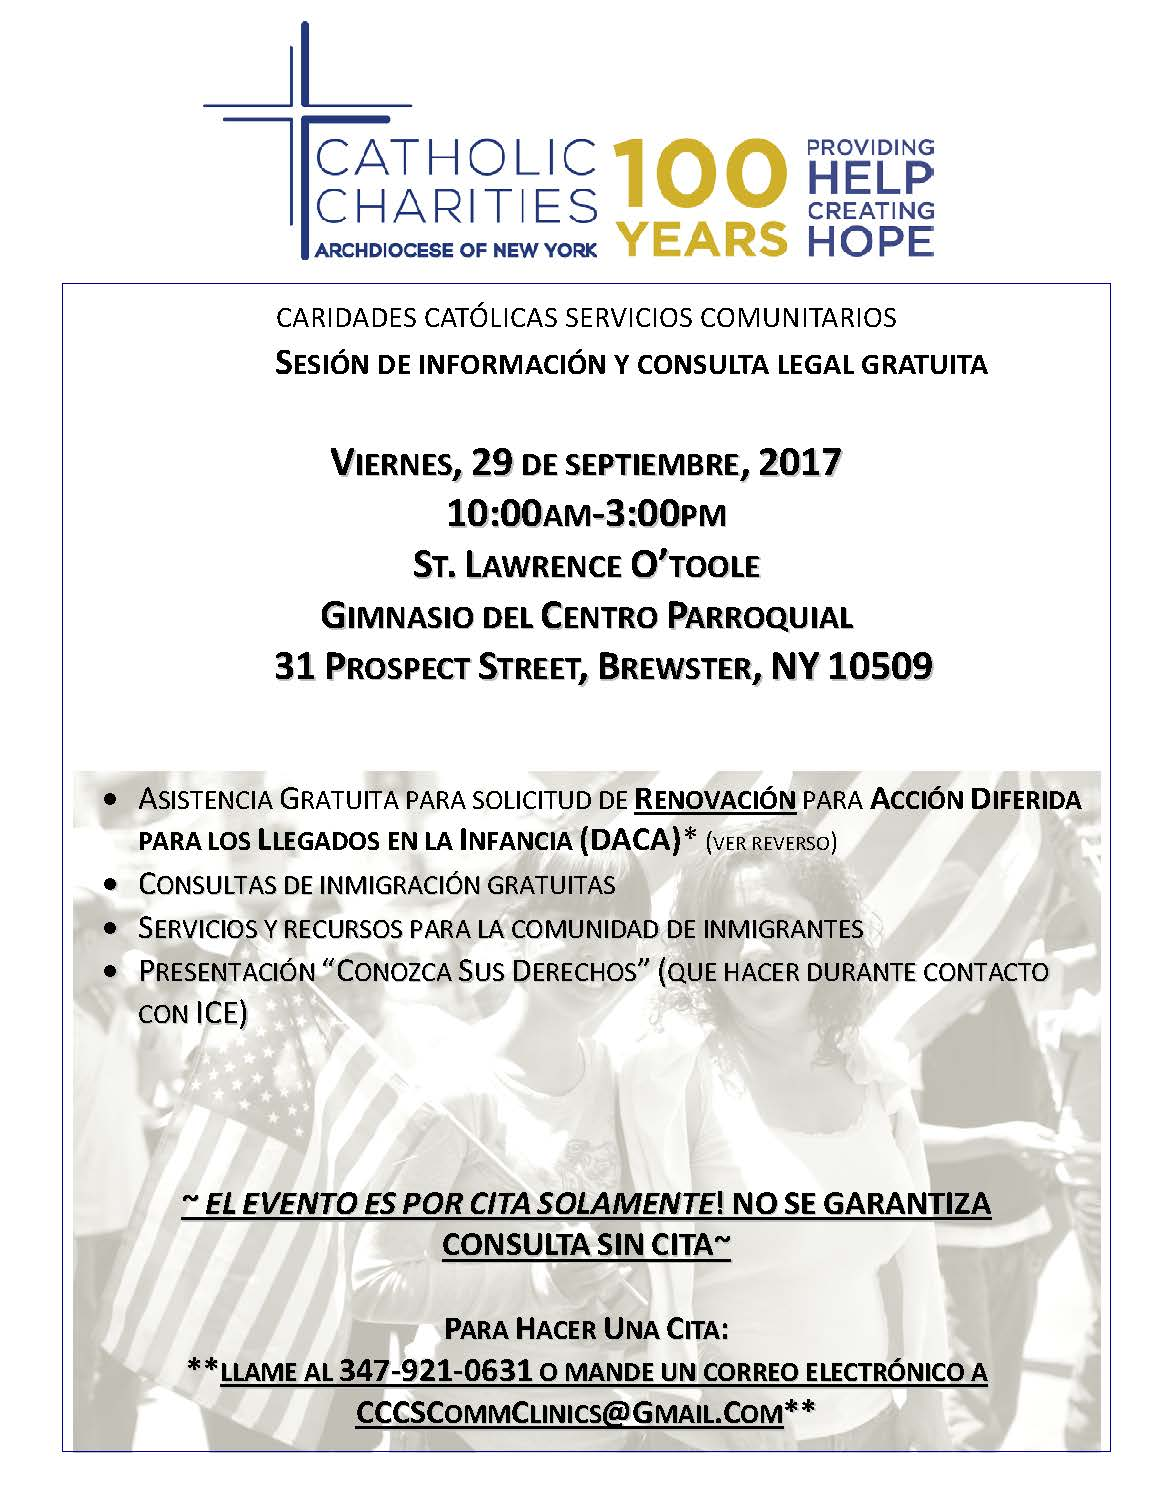 Catholic Charities Immigration Legal Services Information